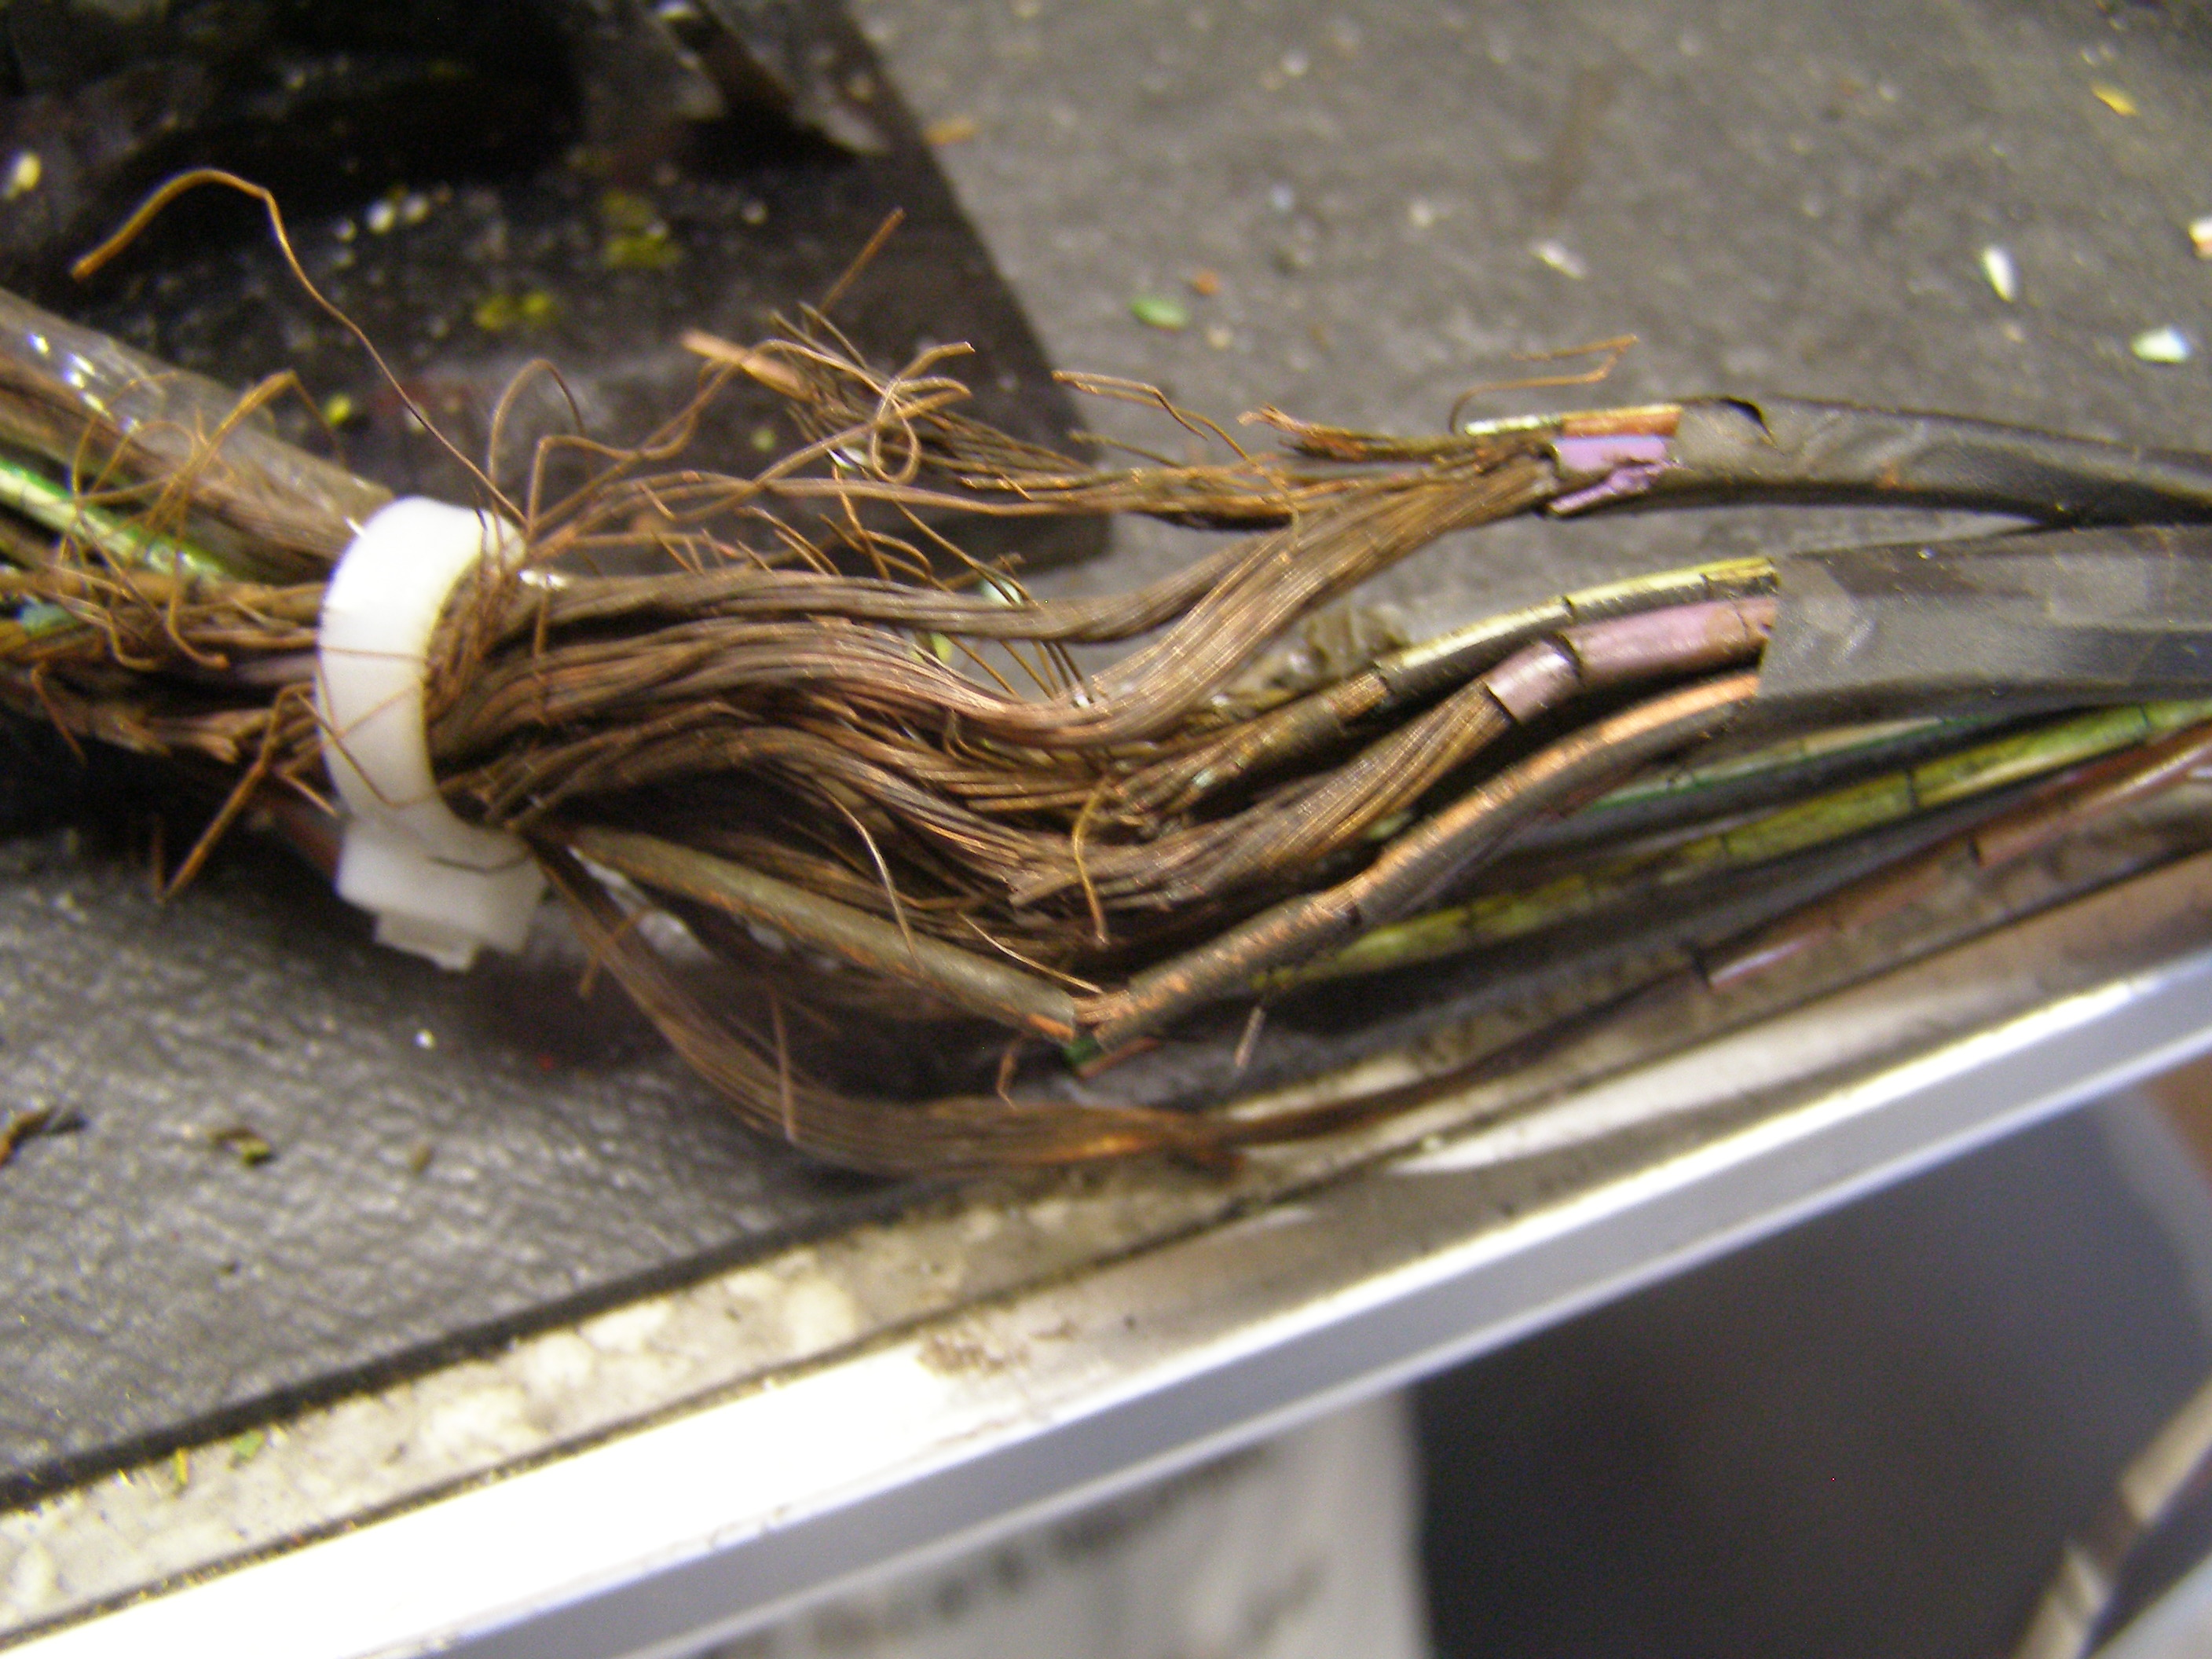 Biodegradable Wiring Harness Were A Bad Idea